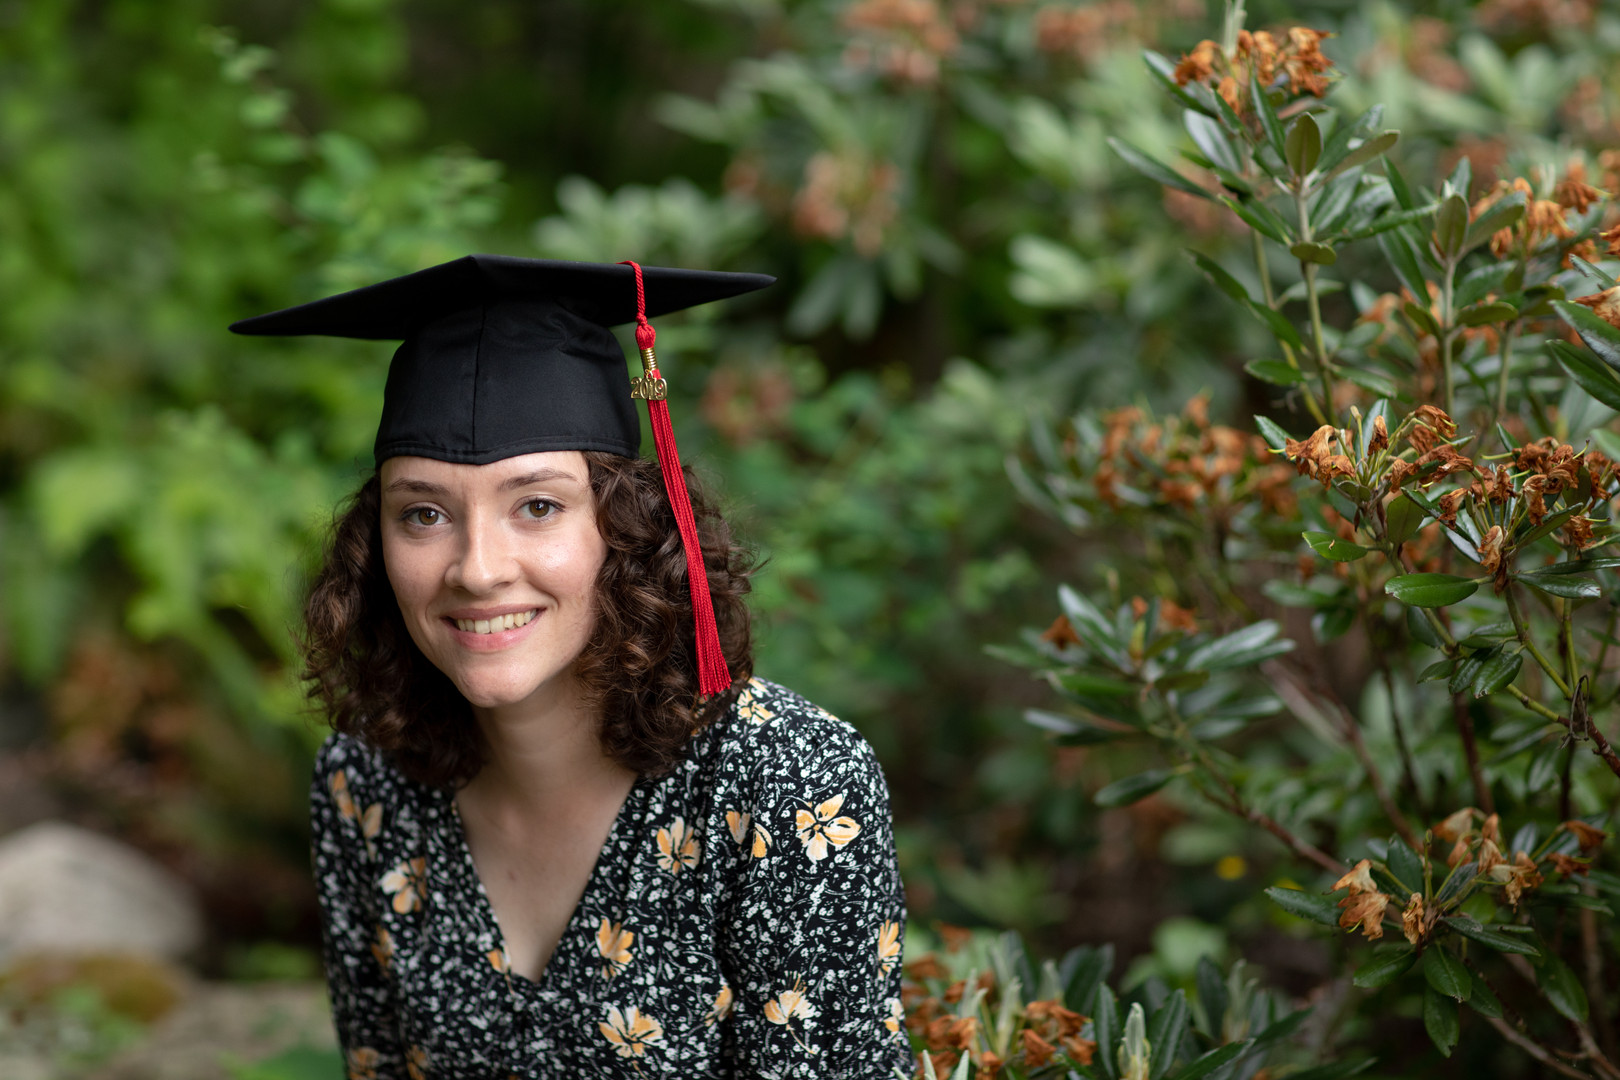 Emily Stout smiles among the Big Rock Garden greenery for her 2019 graduation photos. Emily frequents the garden that is near her house to read and admire the 20+ sculptures open to the public.